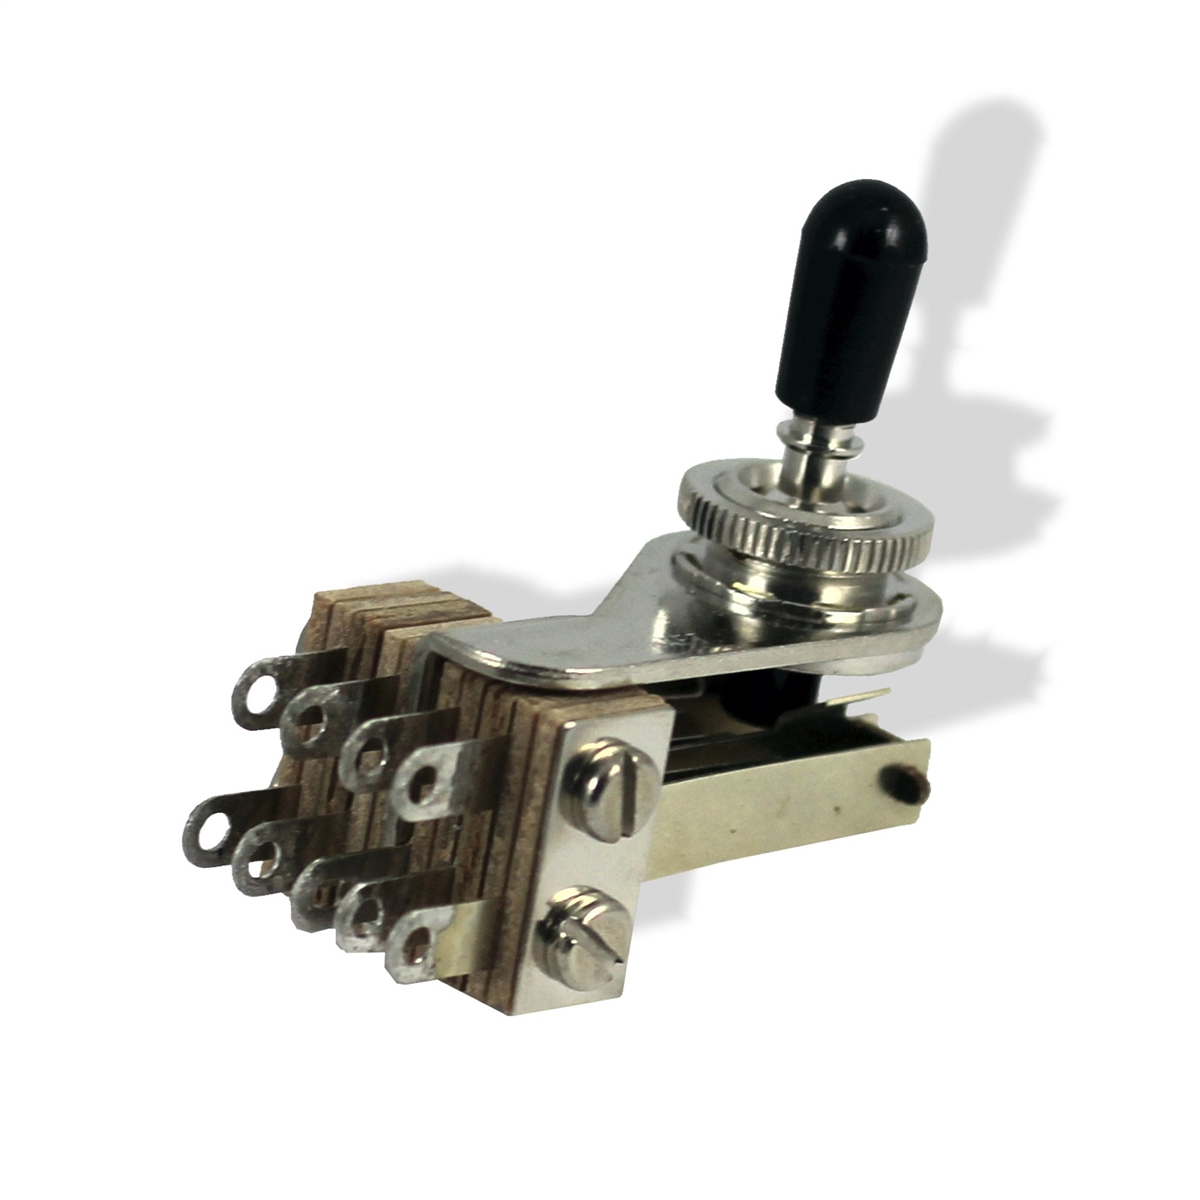 medium resolution of toggle 3 way switch black knob angle